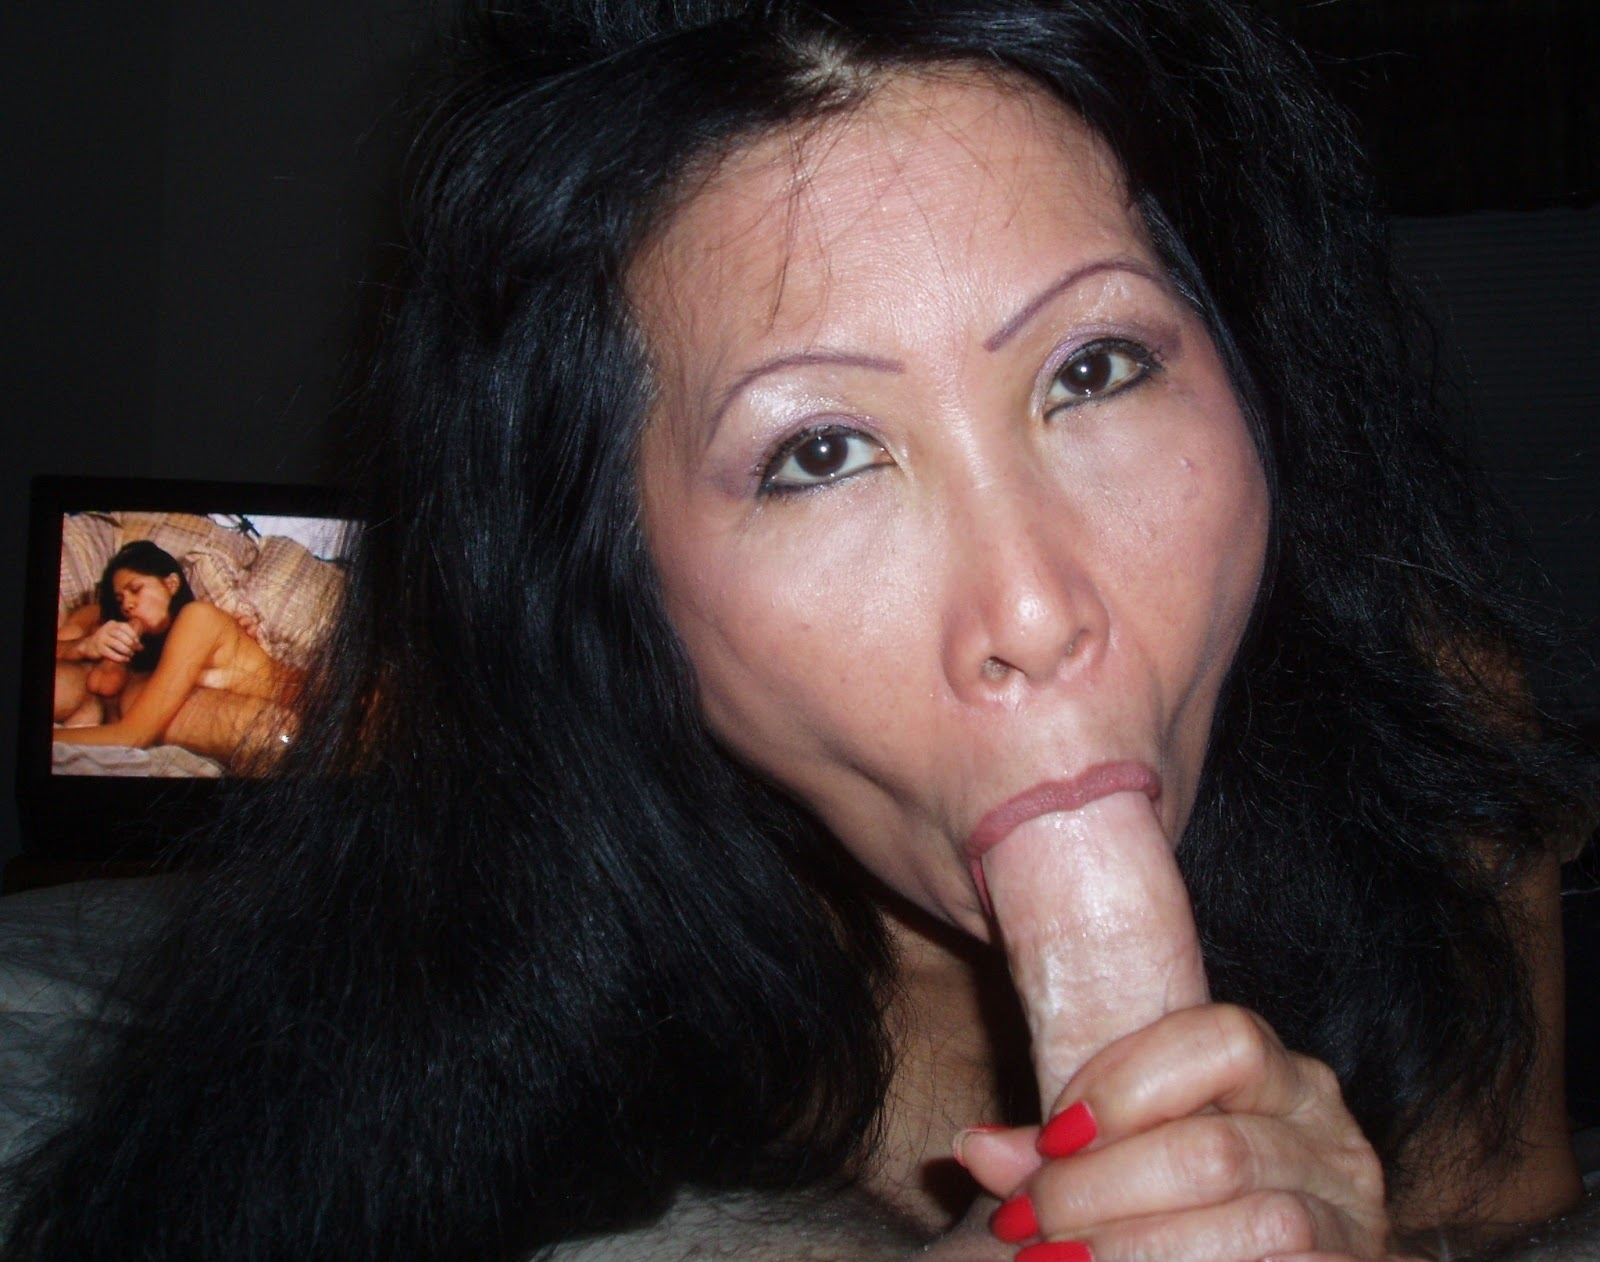 Tits are asian mature dick blowjob thats